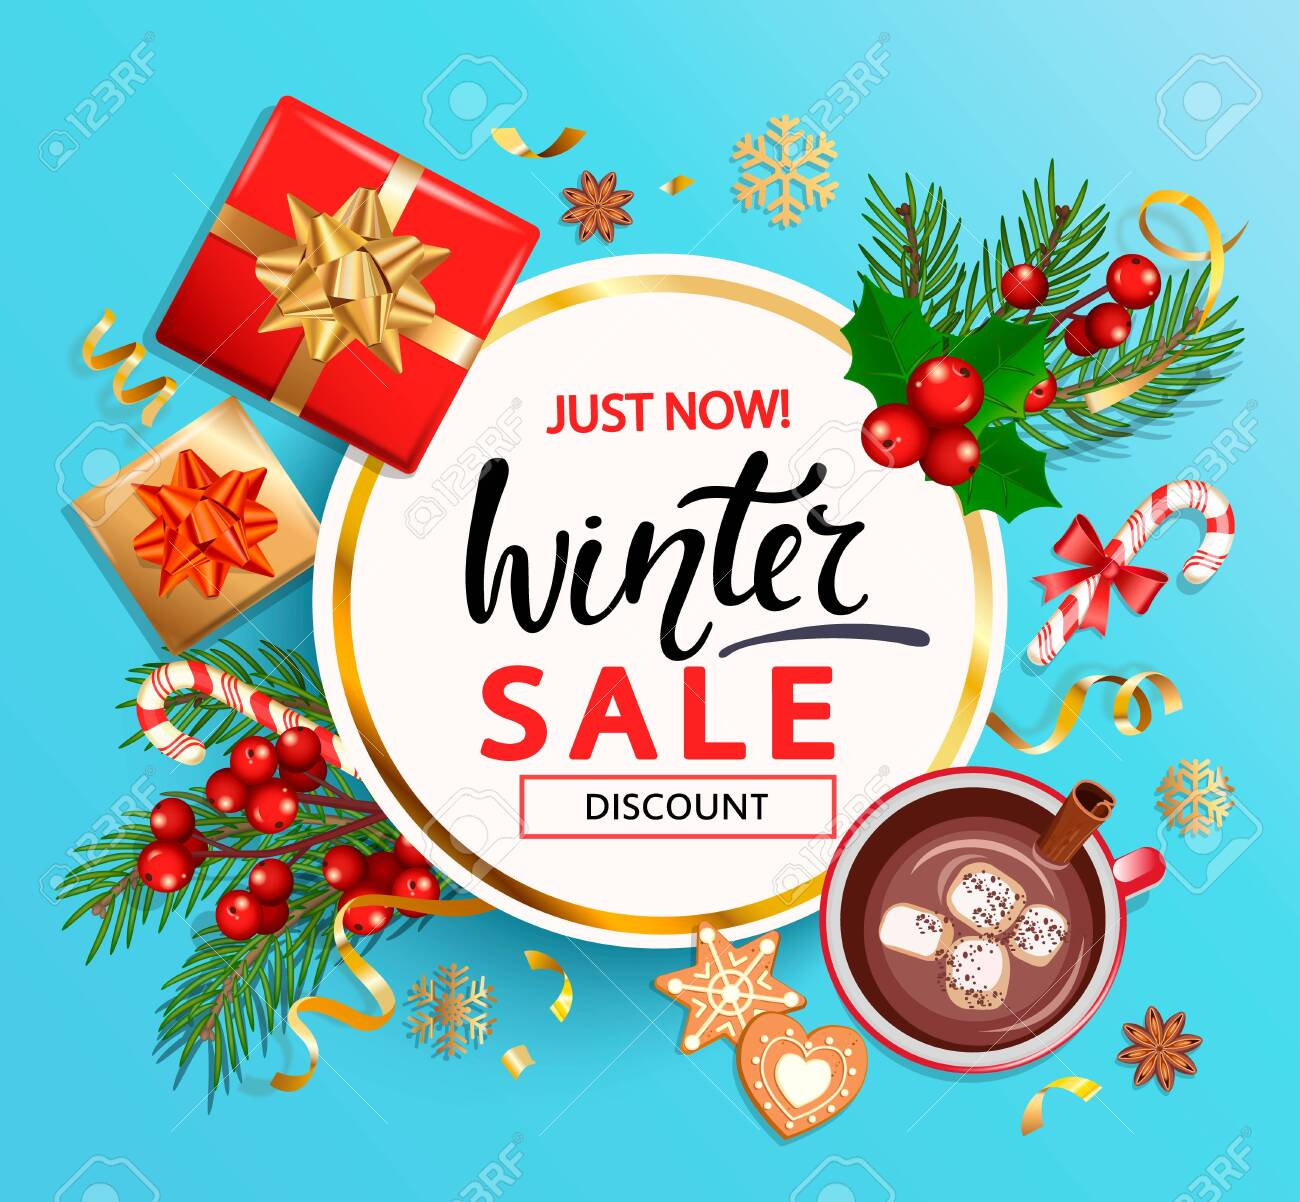 Free Christmas Gifts 2020 Winter 2020 Sale Banner,invitation Card With Hand Drawn Lettering